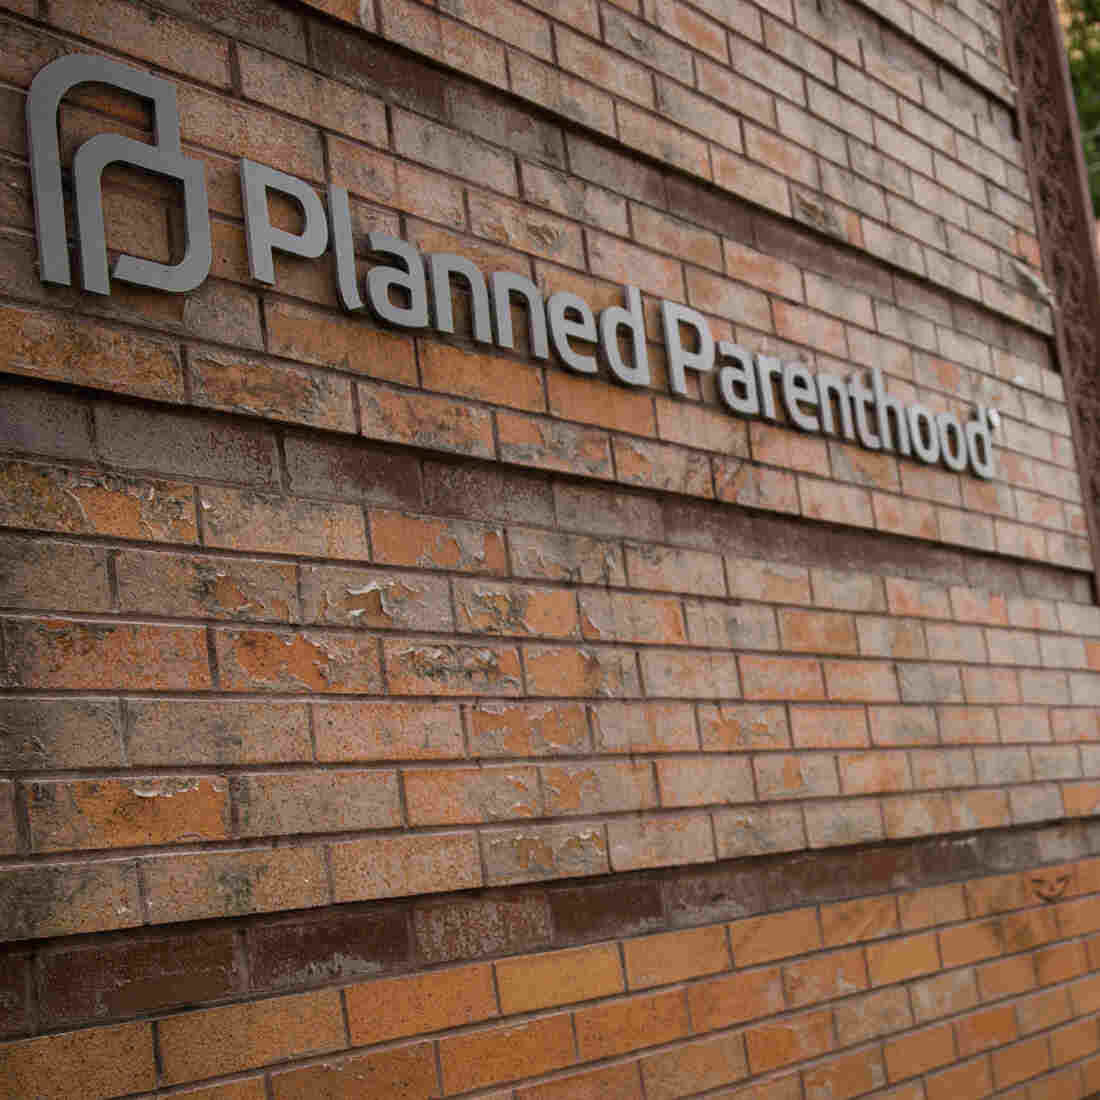 Fact Check: Was Planned Parenthood Started To 'Control' The Black Population?